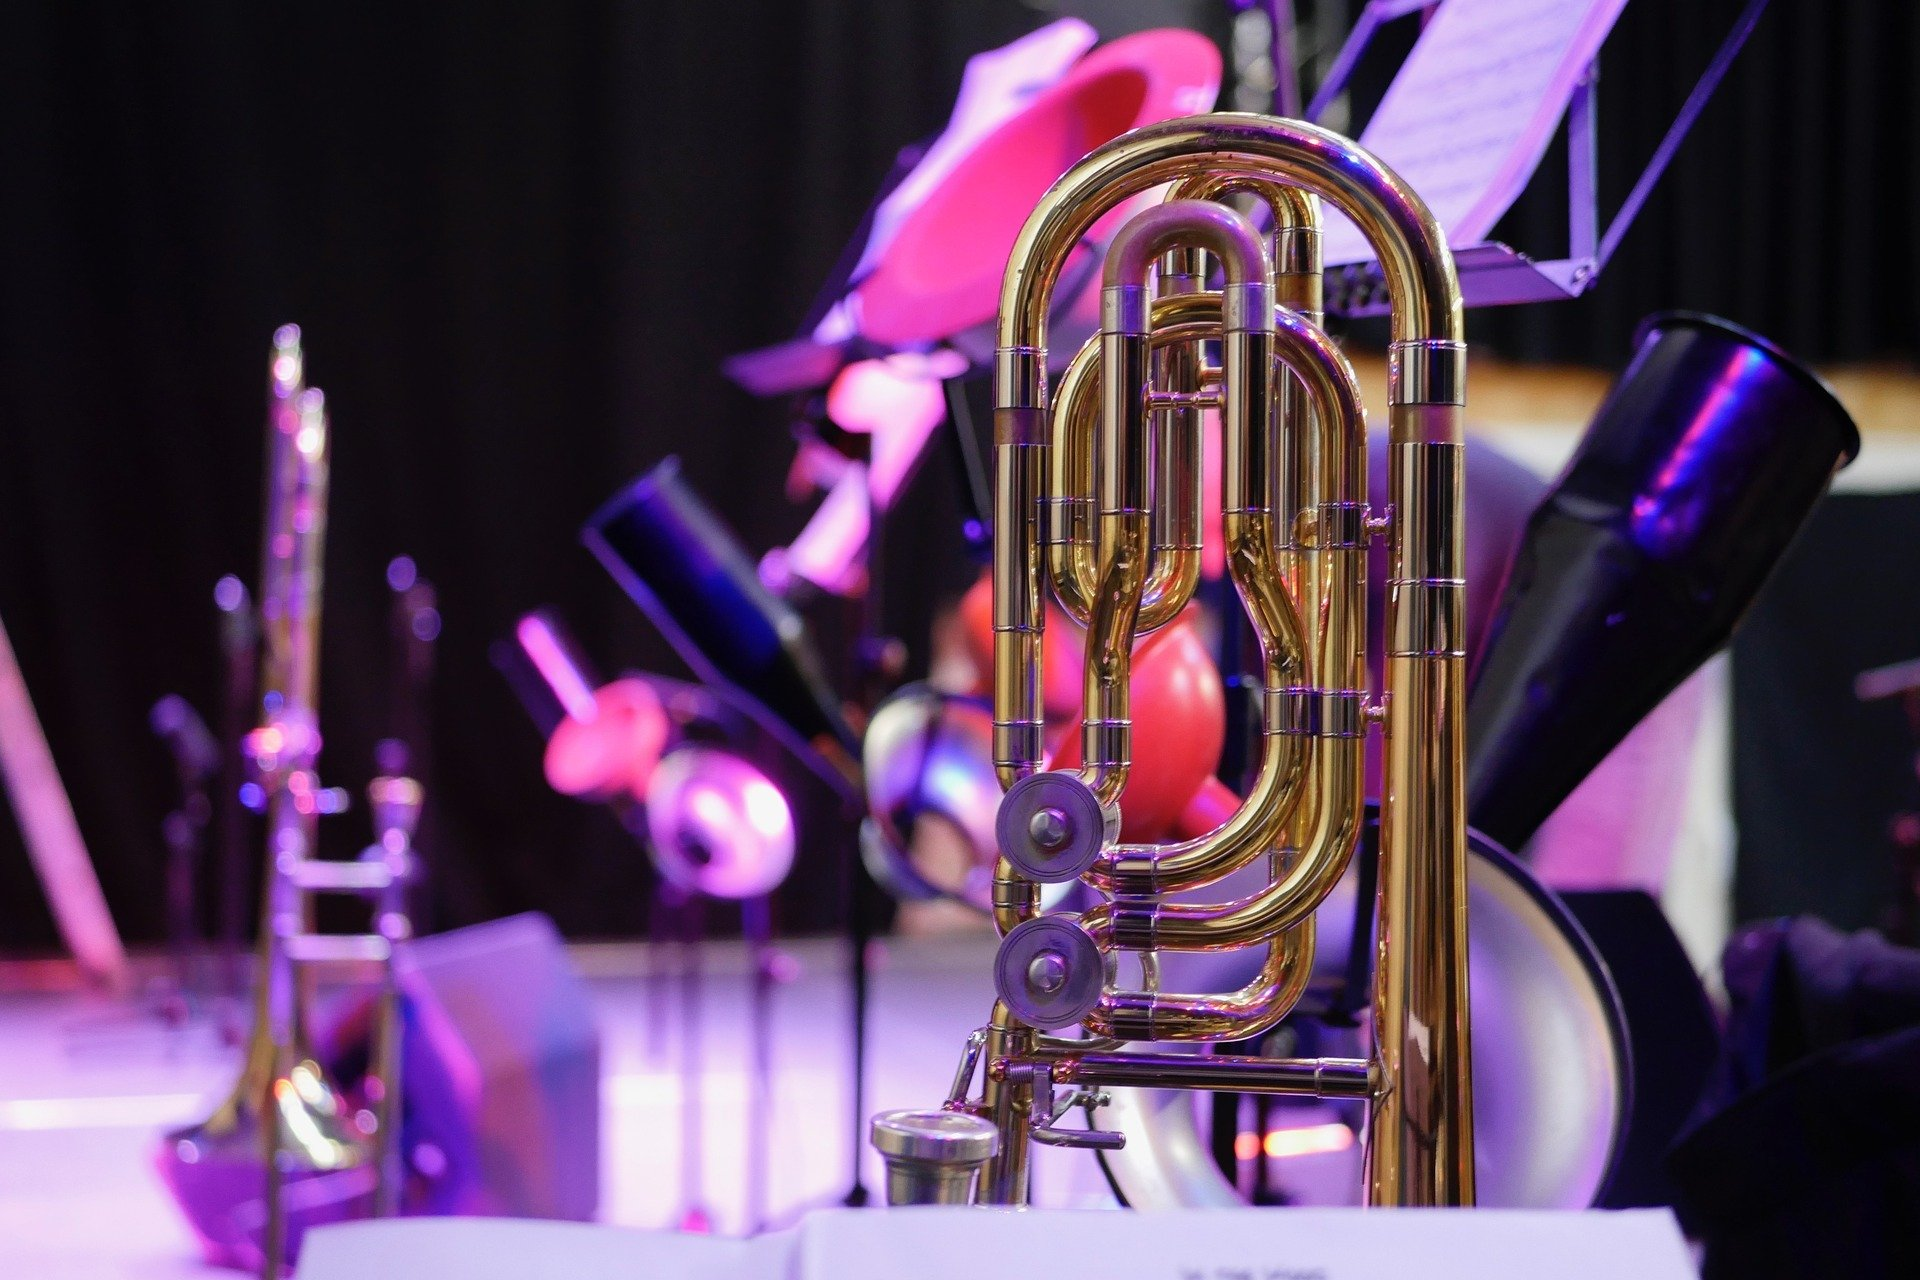 trombone in front of other musical instruments